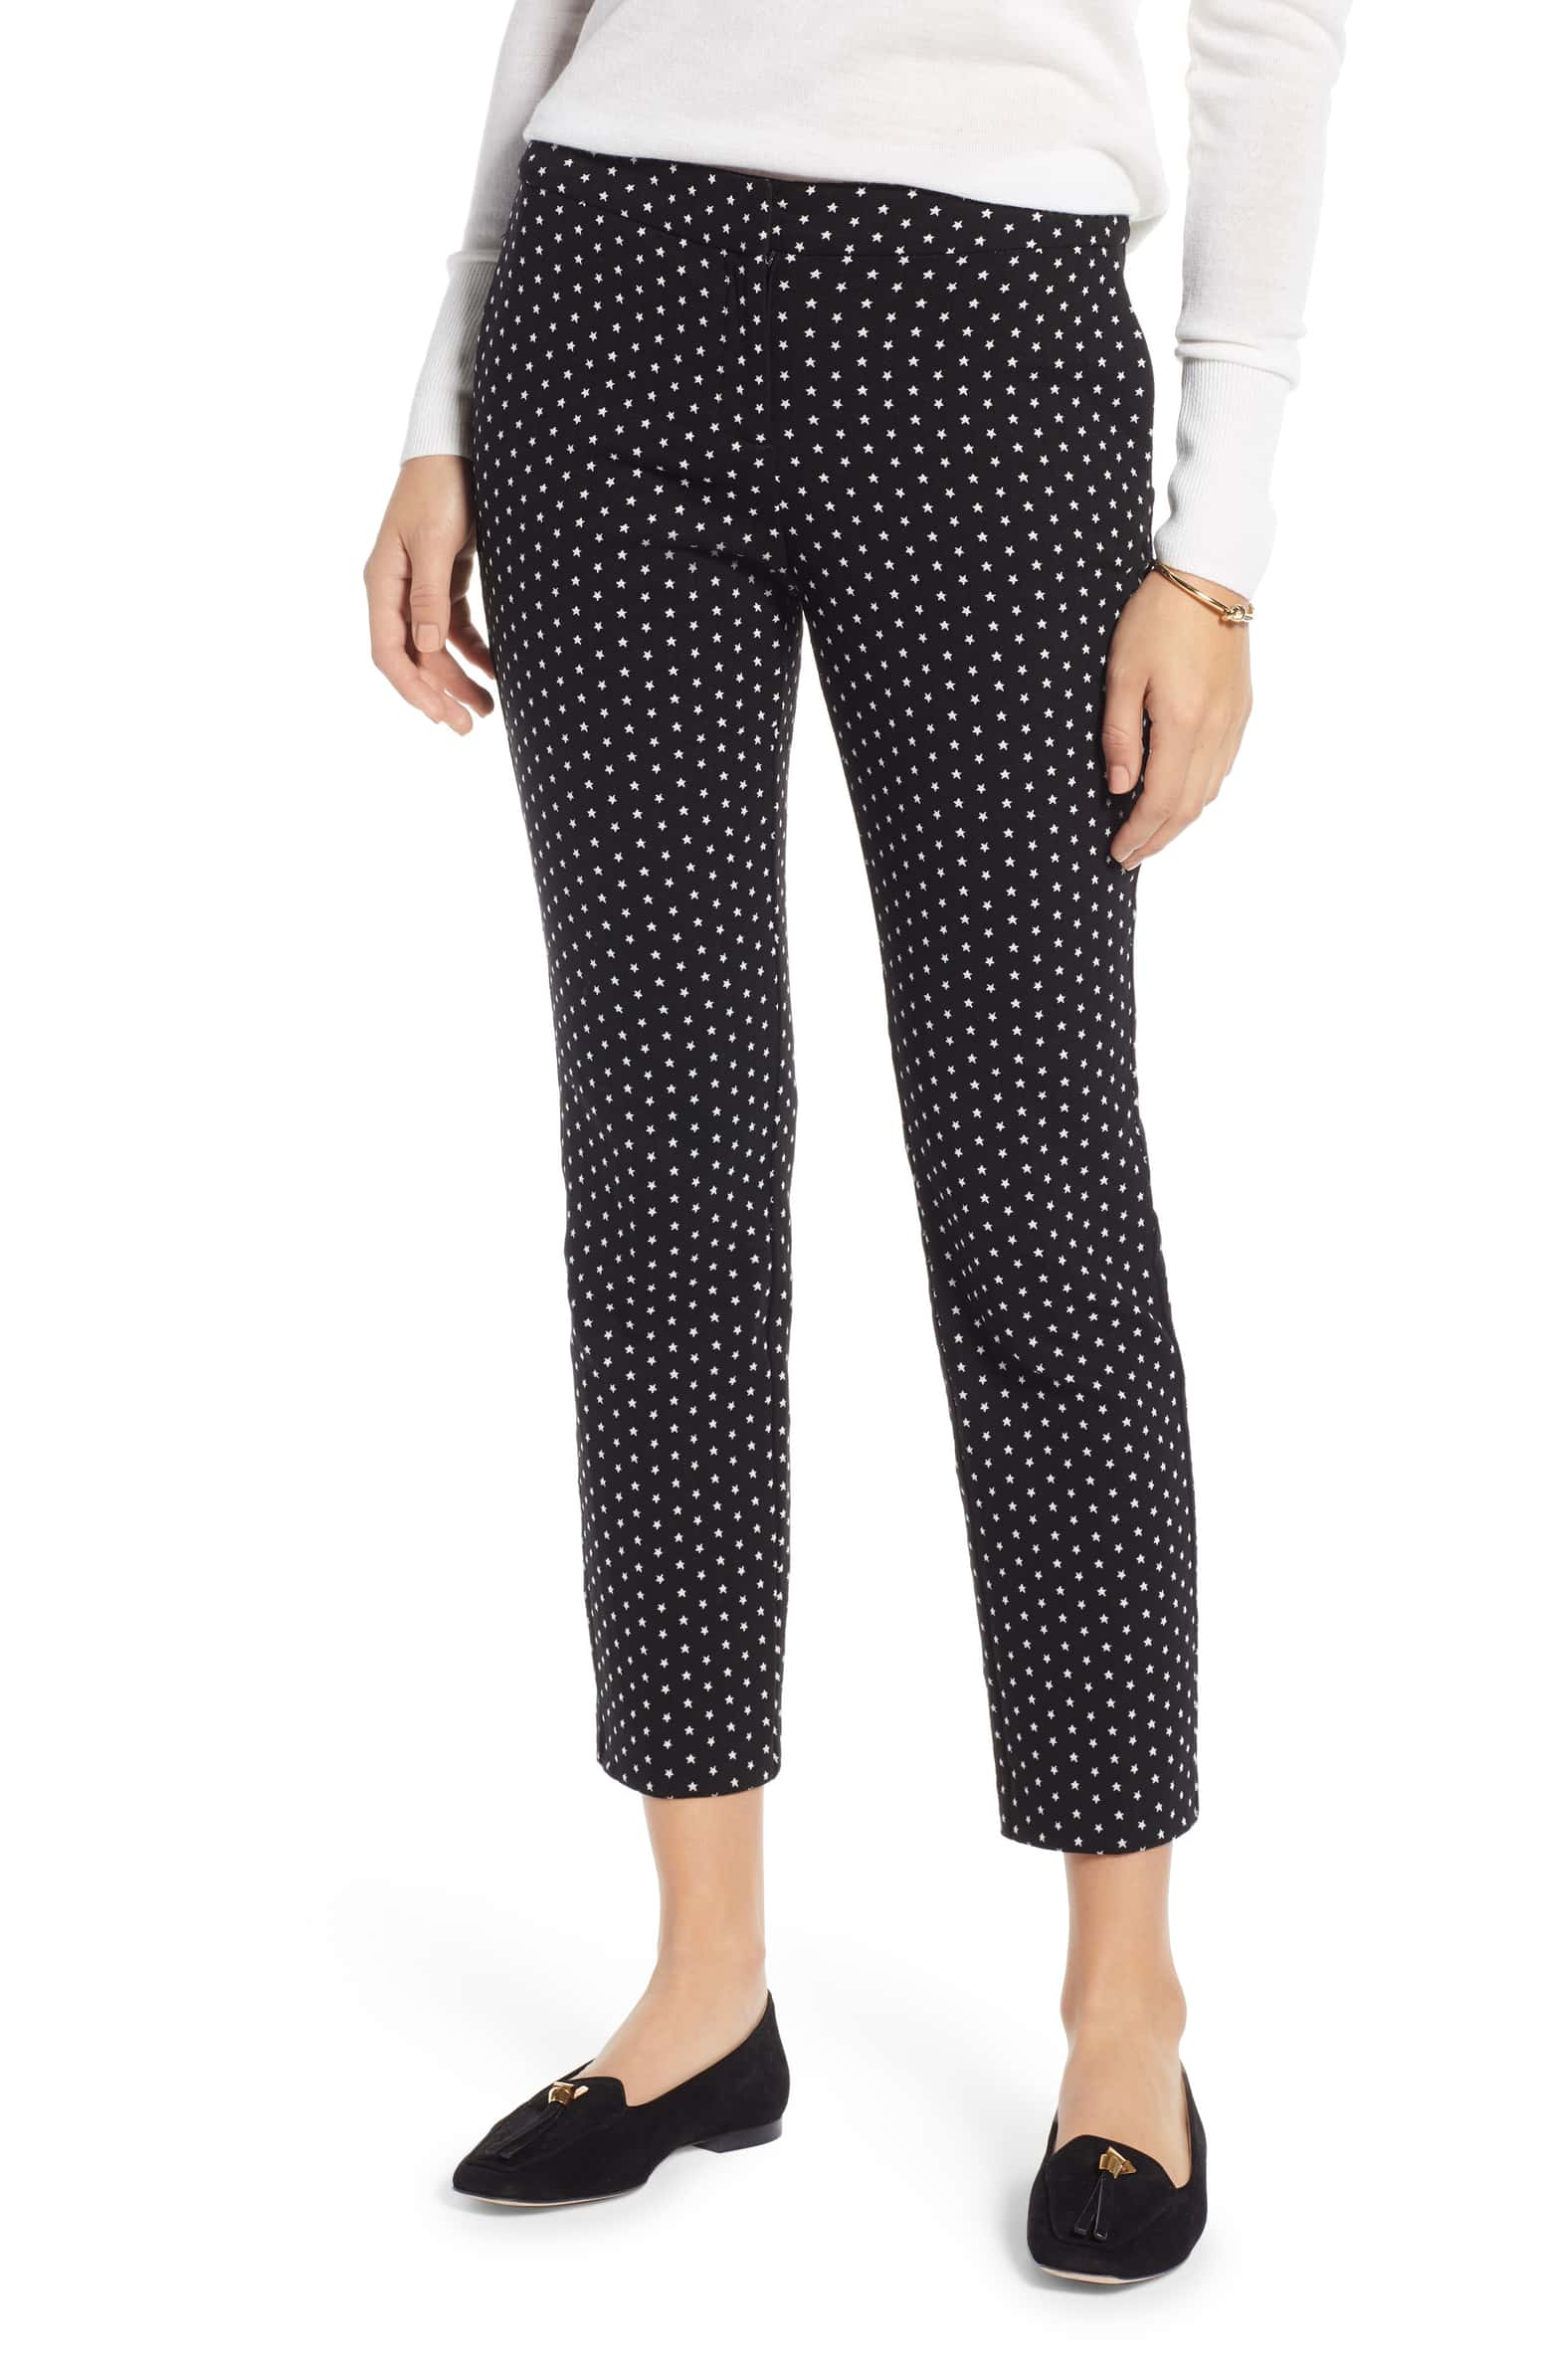 (Brand new -- Sample) Nordstrom 1901 Star Pants